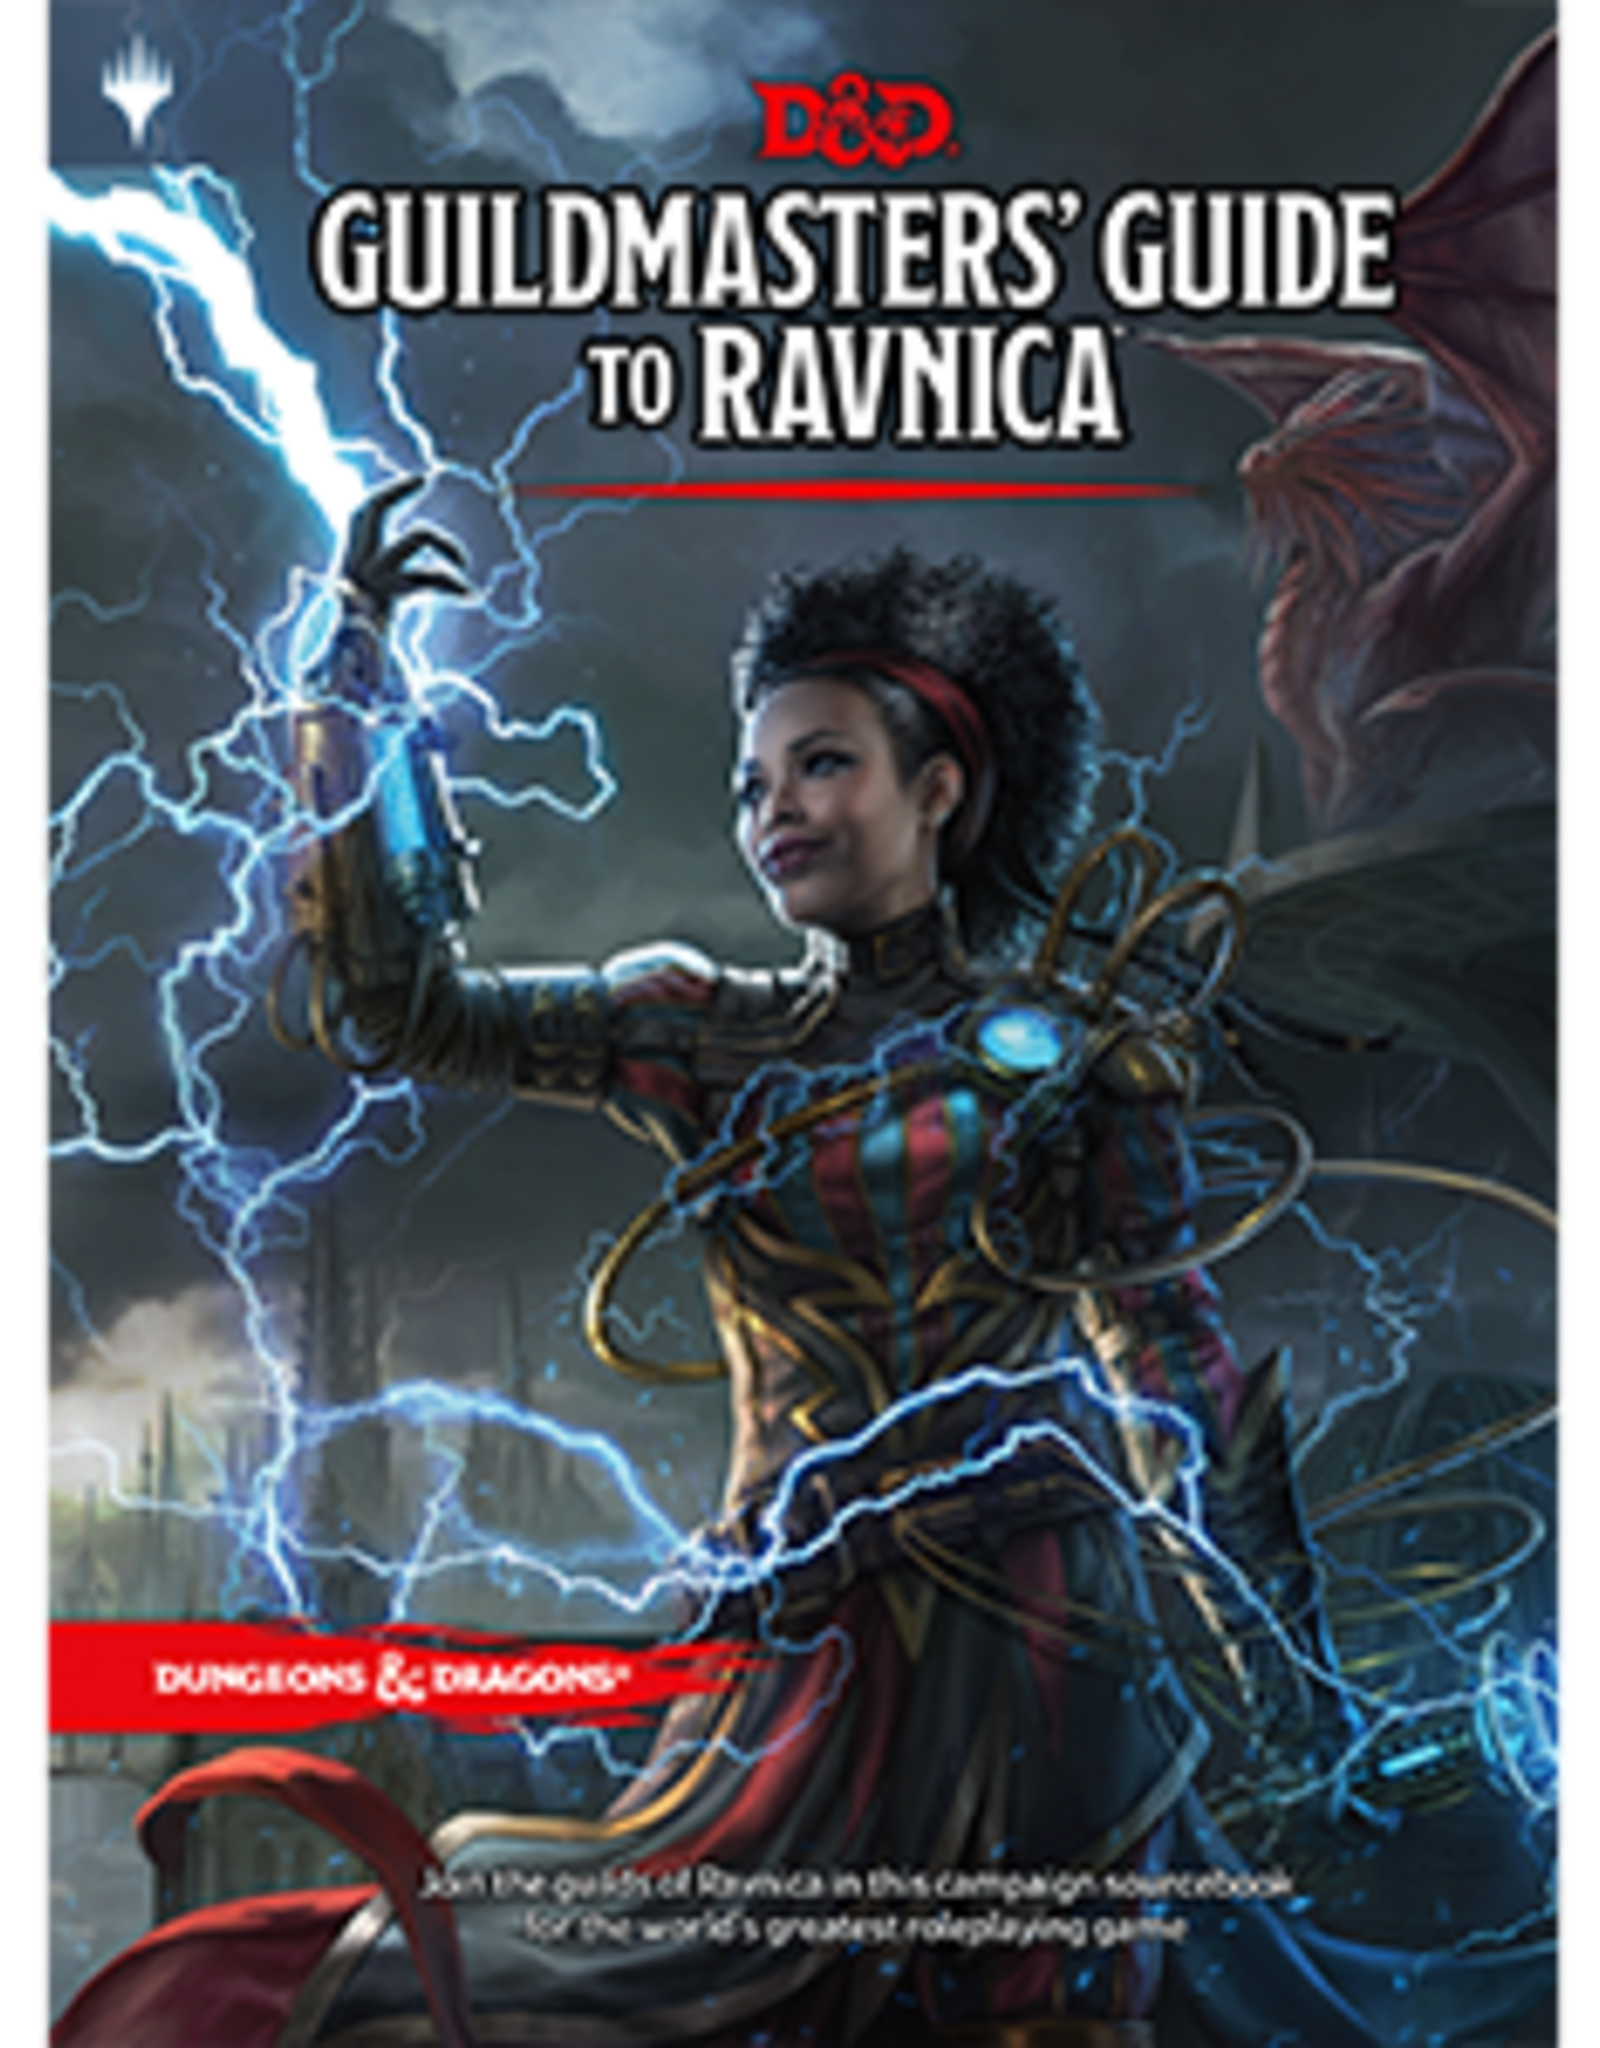 Wizards of the Coast D&D 5th: Guildmaster's Guide to Ravnica